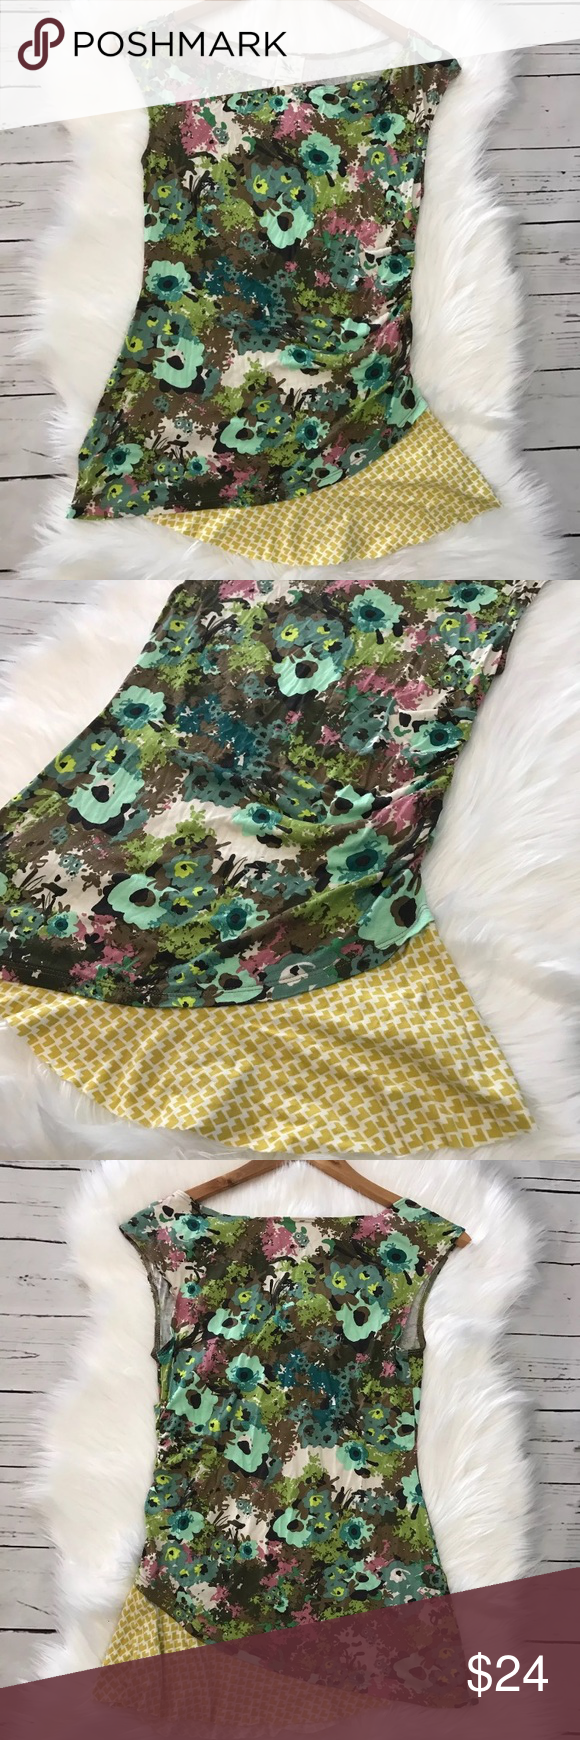 """Weston Wear Boho Floral Ruffle Top Gorgeous asymmetrical blouse. One sided ruched detailing. Asymmetrical Floral/Geometric print. Bust measures 15""""across and length measures 26"""". Measured laying flat. Anthropologie Tops Blouses"""